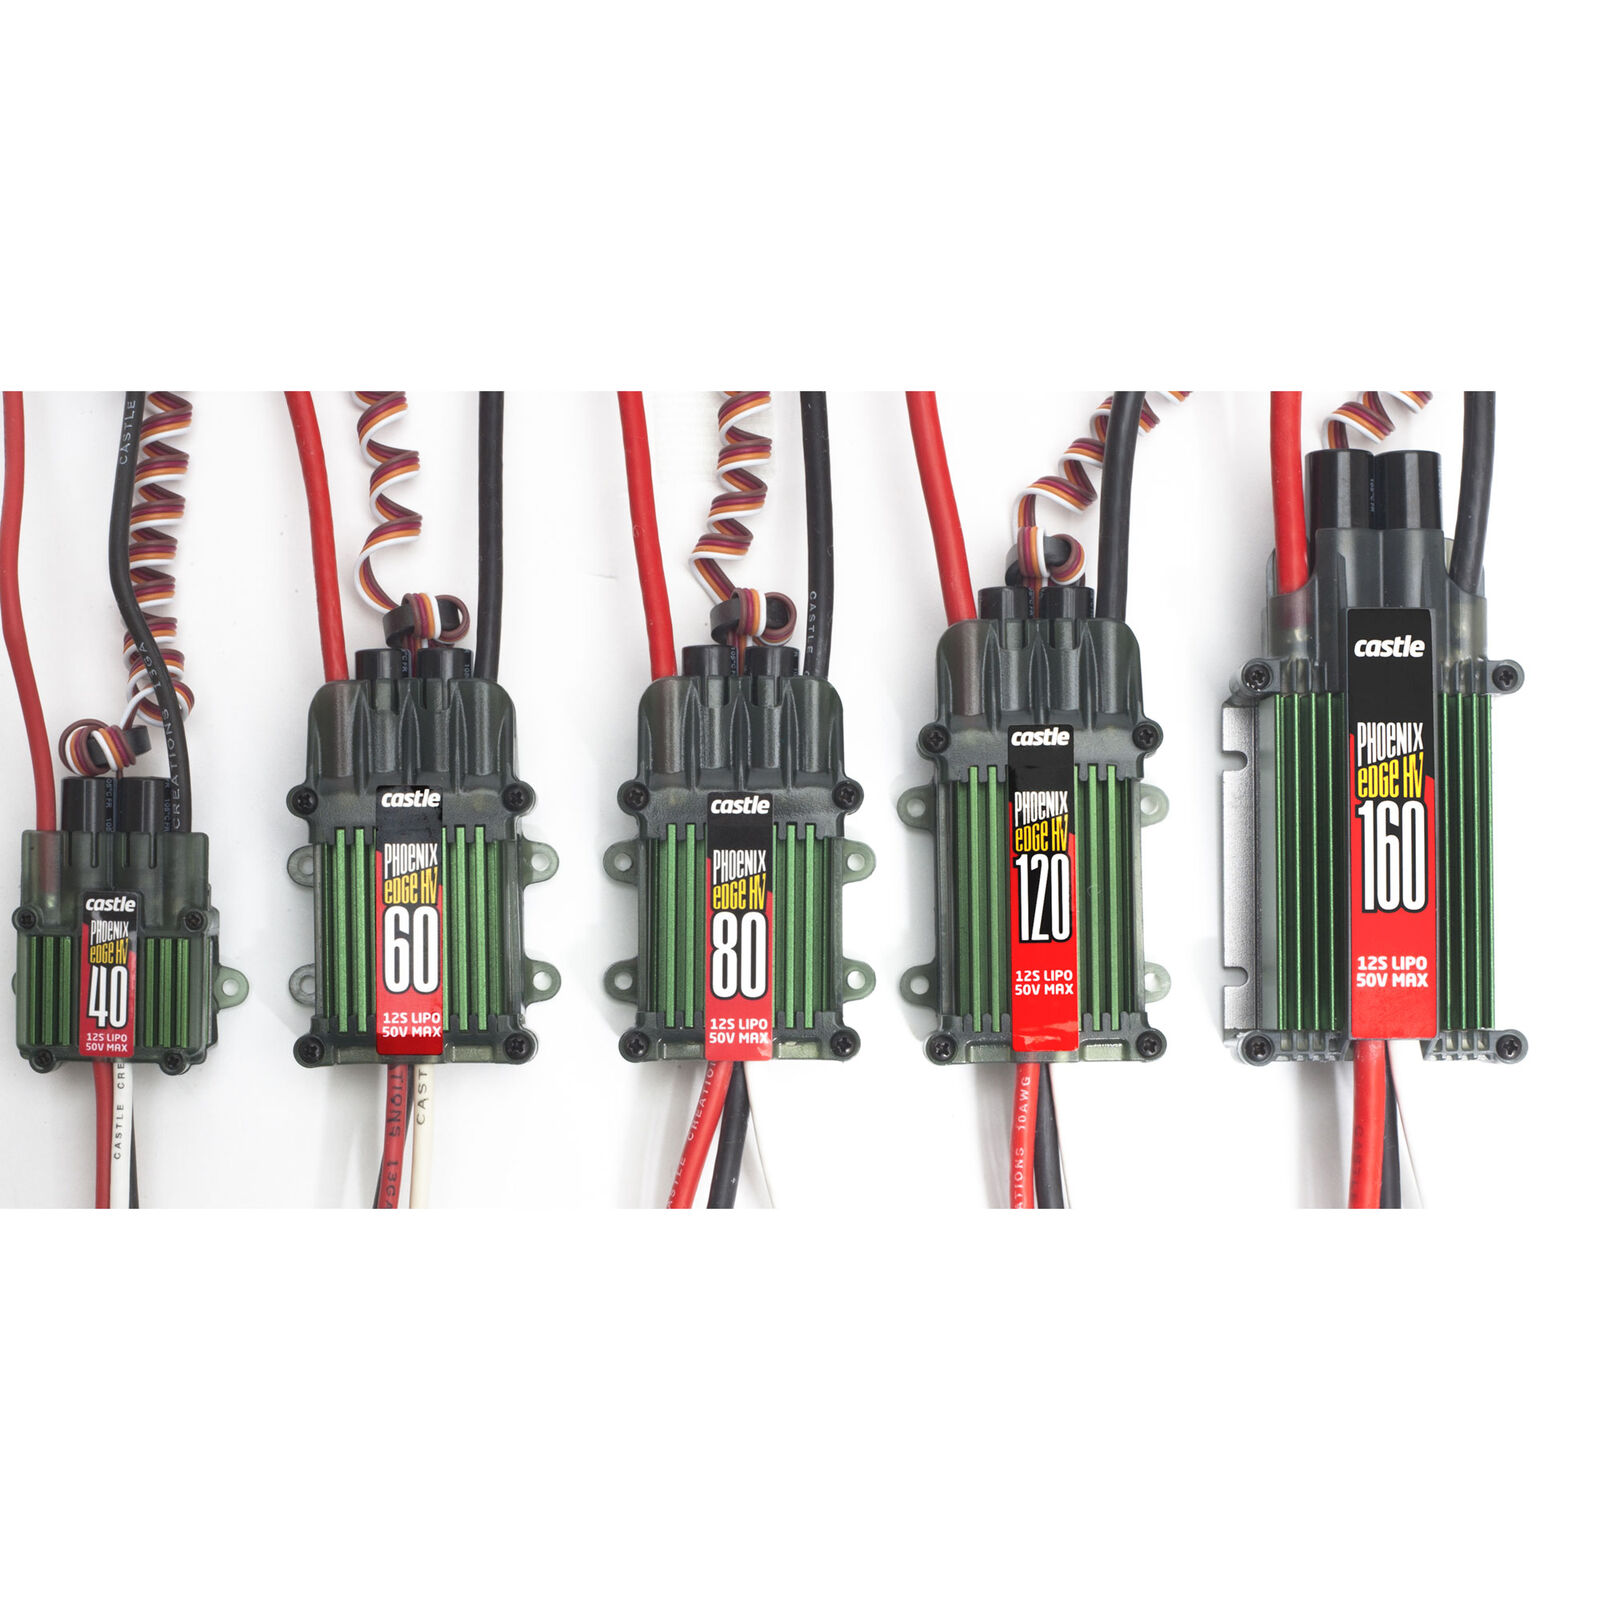 Castle Creations PHX Edge 120 HV 120 Amp Electronic Speed Controller